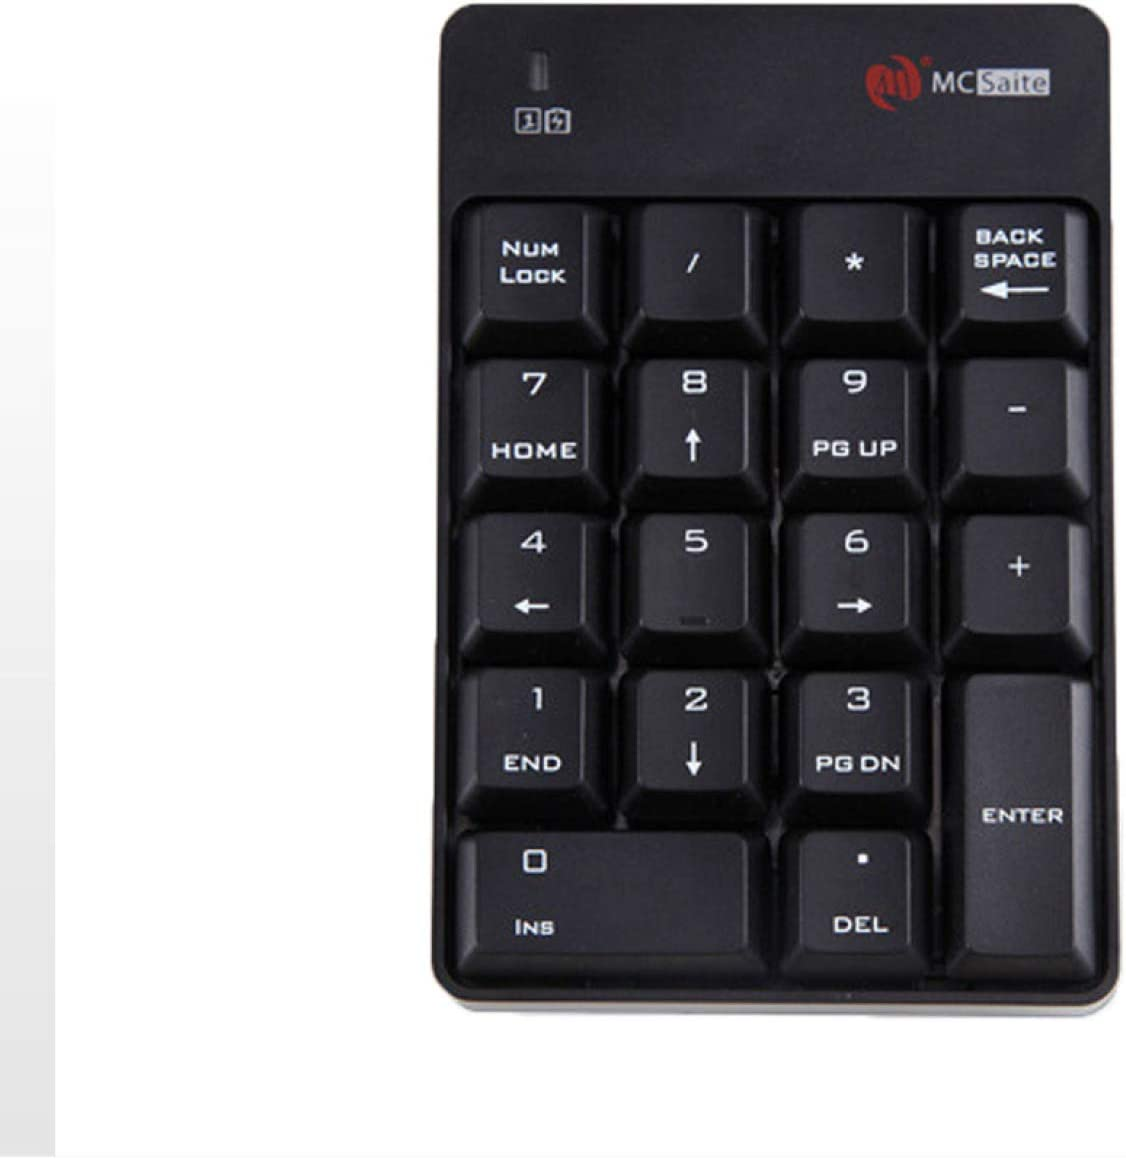 CAOMING Classic SK-51AG 2 in 1 2.4G All items in the store Numeric Mini Keyboard Wireless USB